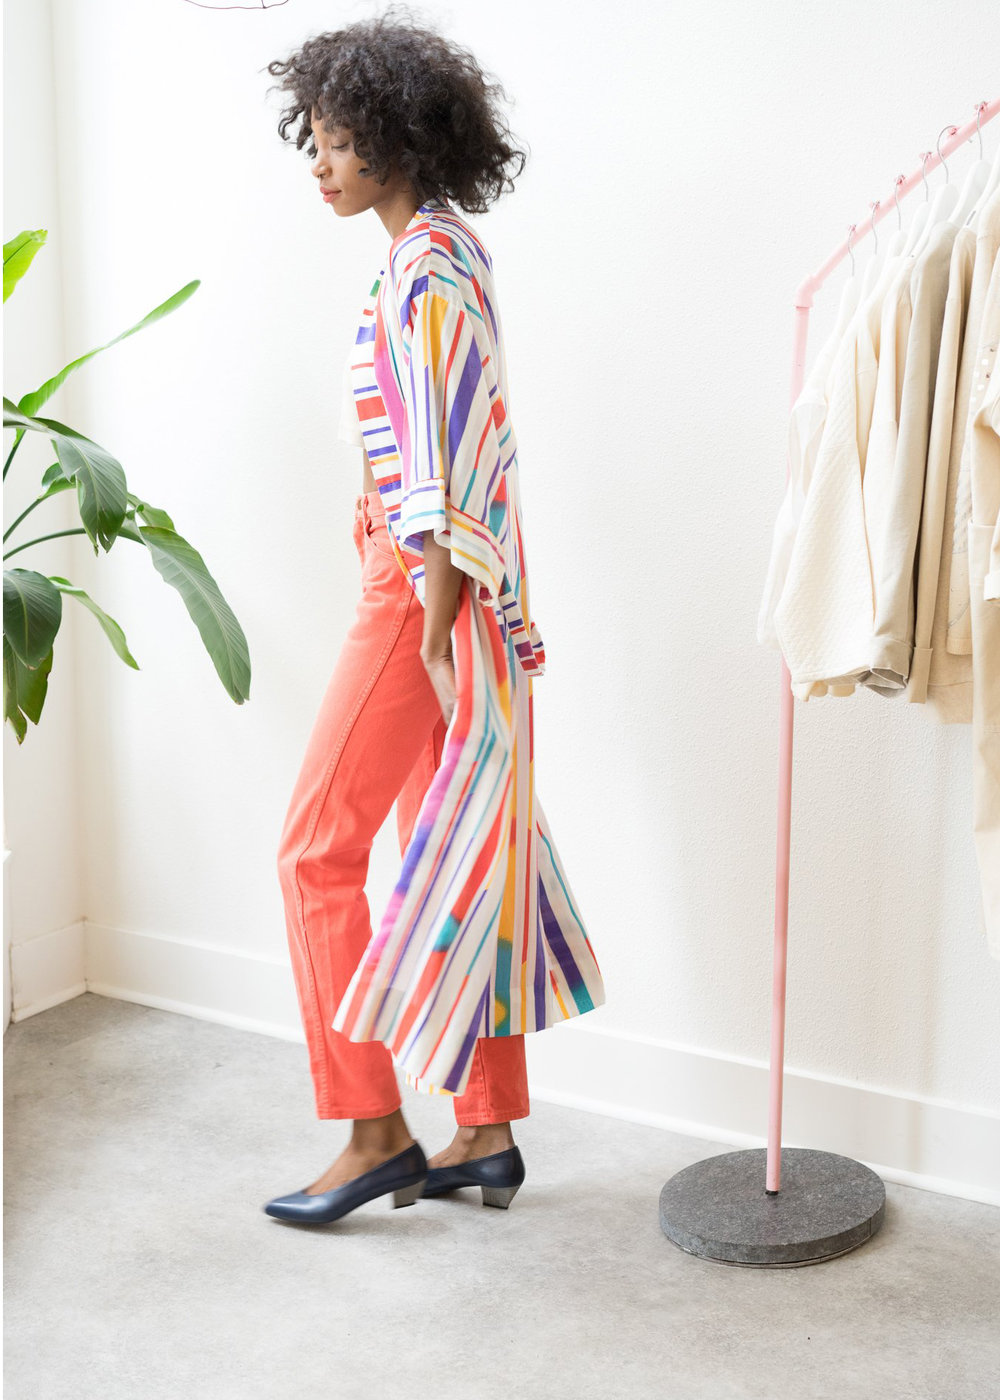 UNDER $200 - You really can't go wrong with a cool and bright lightweight summer jacket. This vintage robe is all of those things at $165.